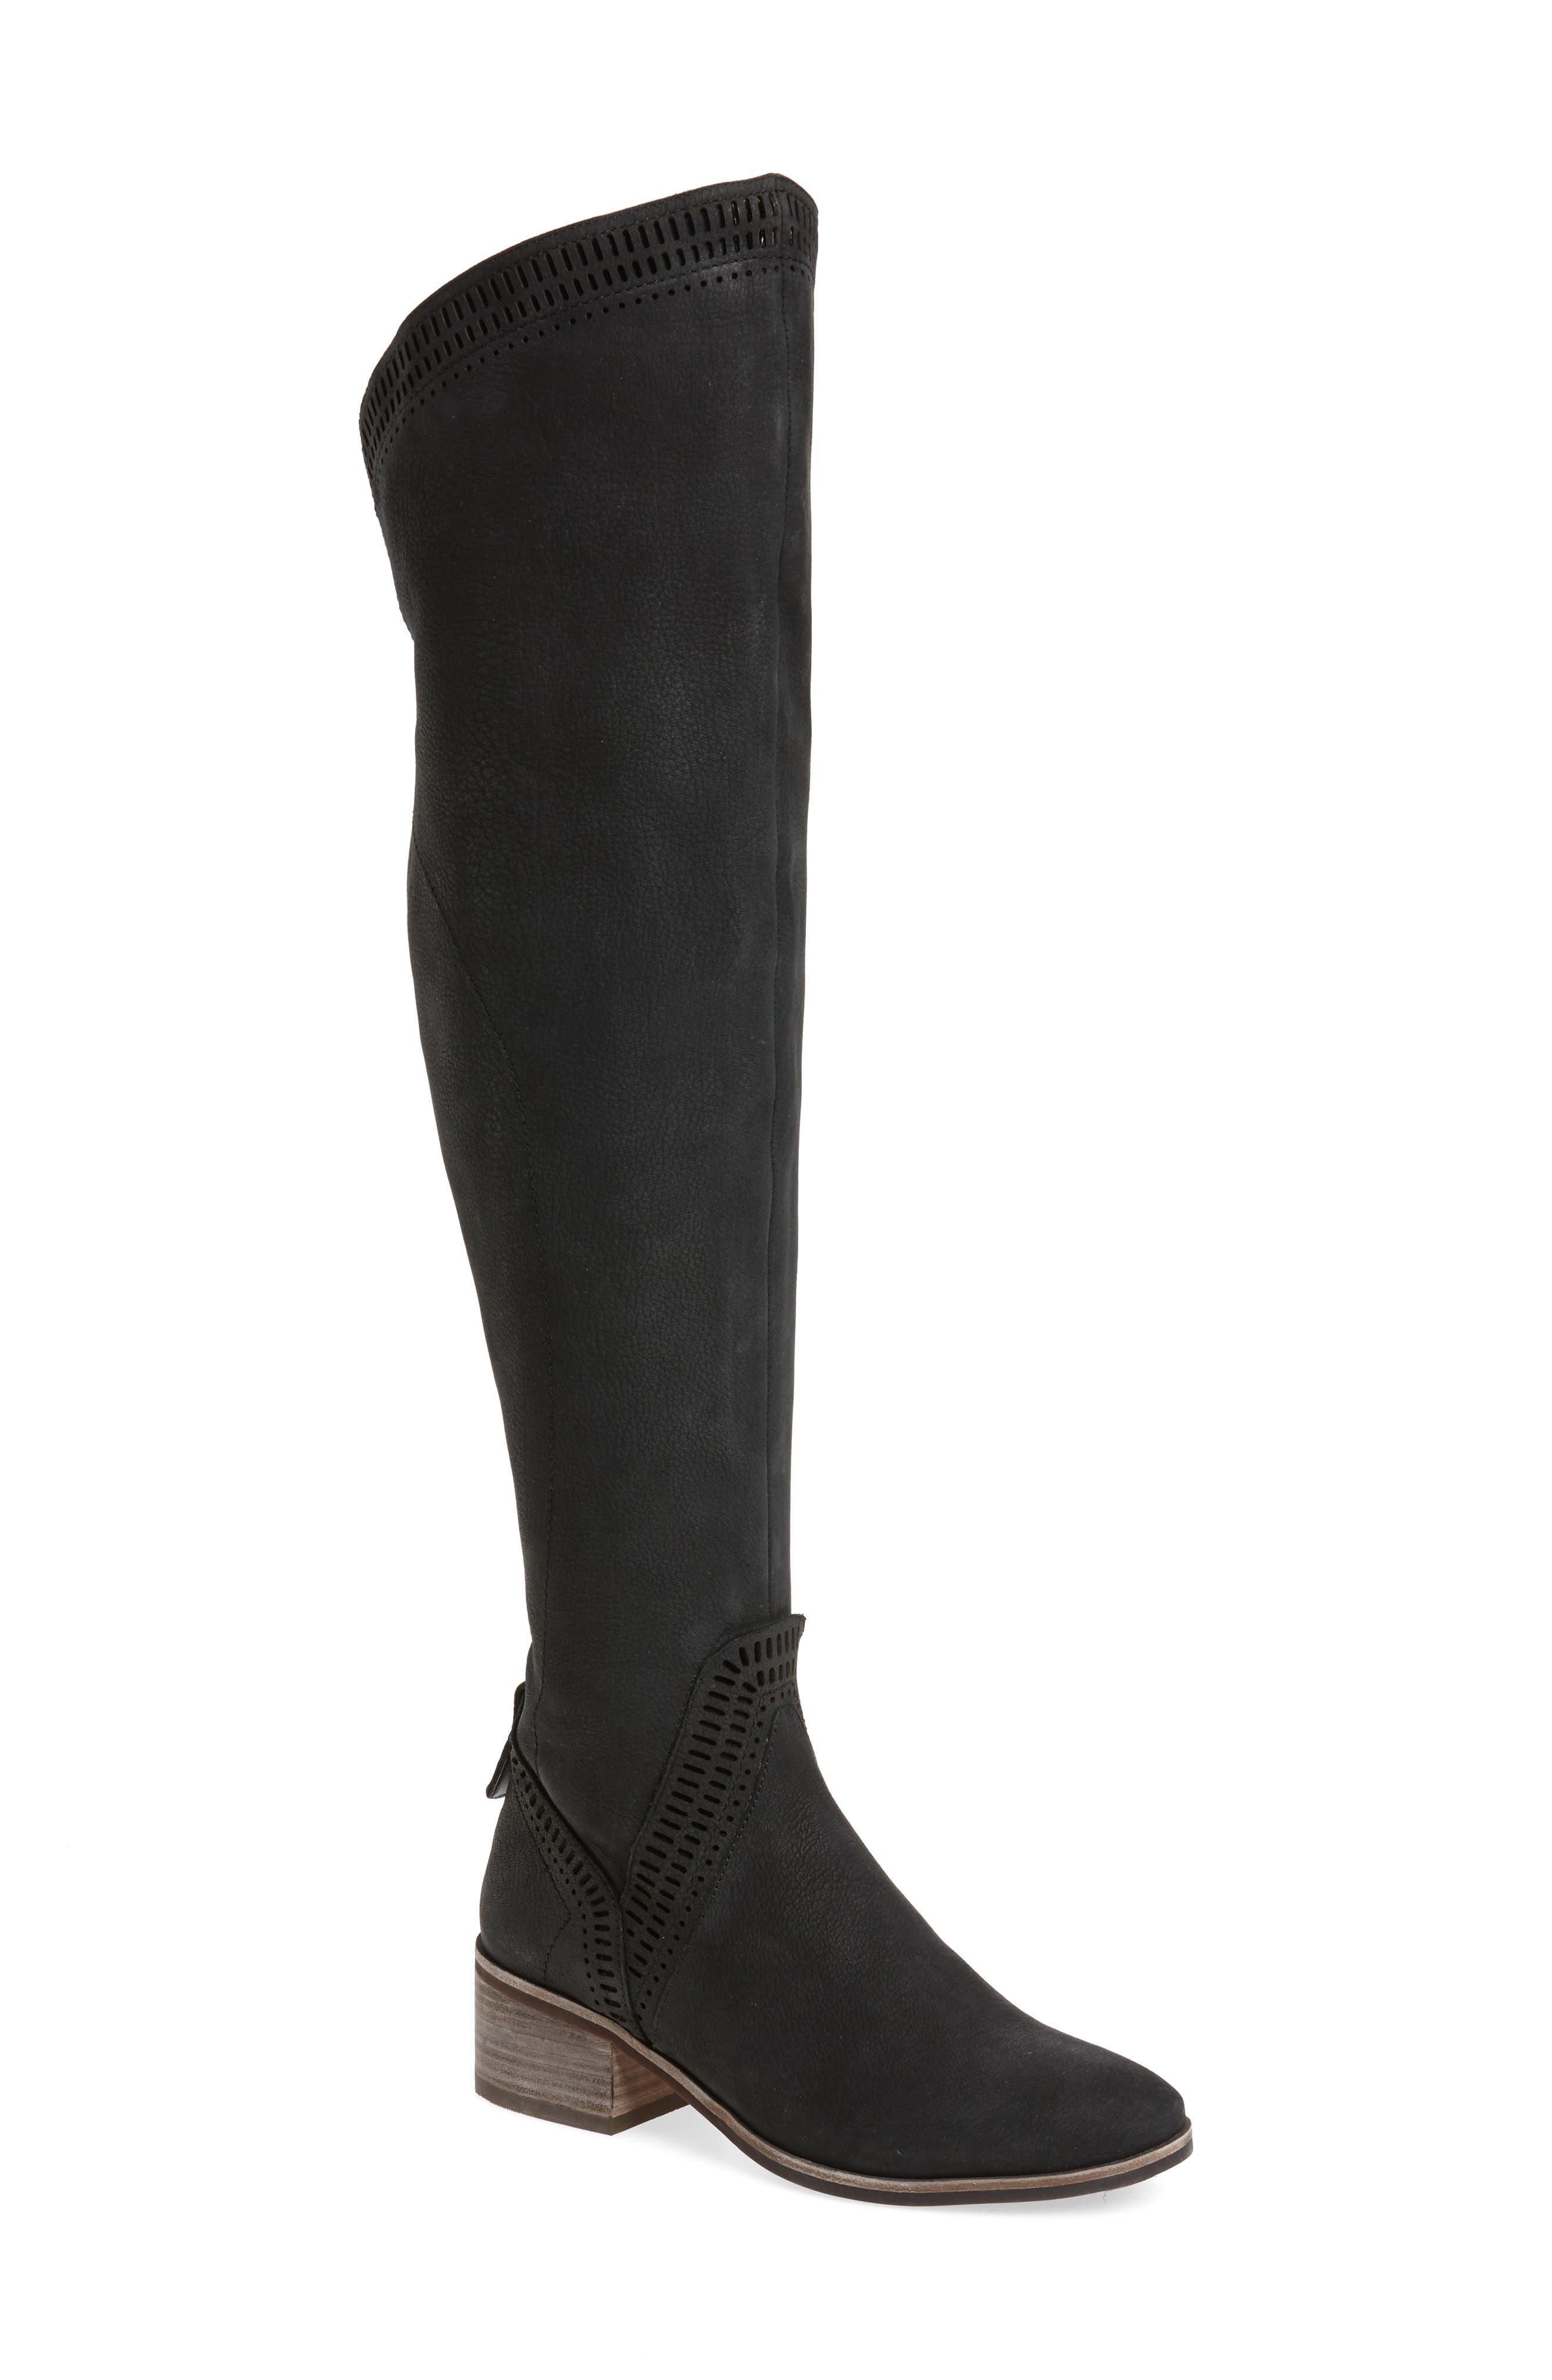 Karinda Over the Knee Boot,                         Main,                         color, Black Leather Wide Calf